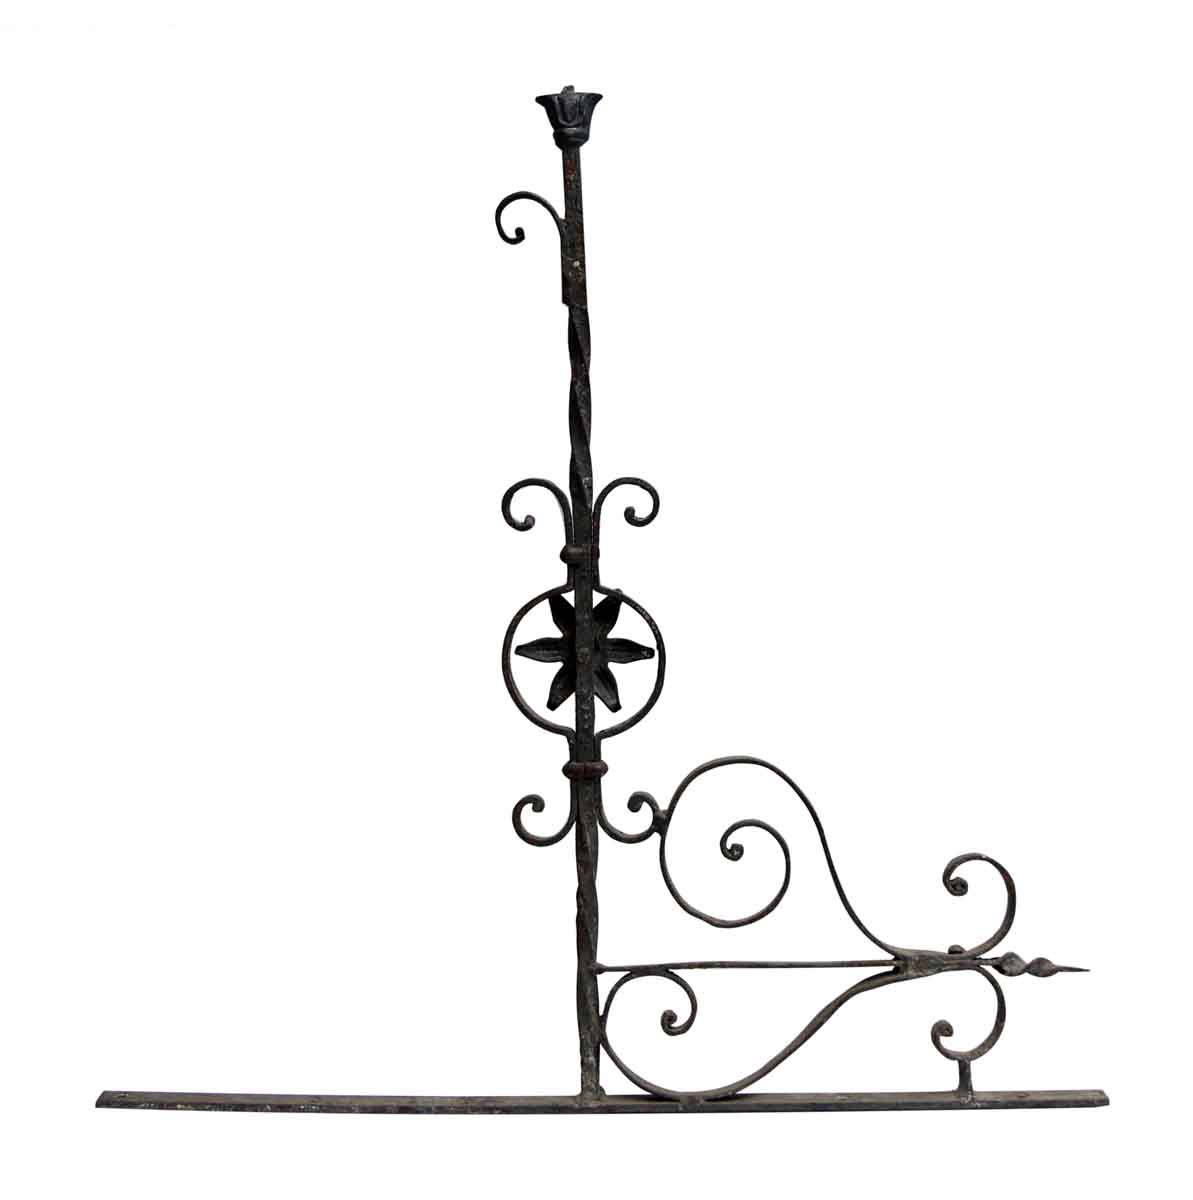 Decorative Iron Sign Holder  Olde Good Things. Bear And Moose Decor. Home Decor Wholesalers. Hotel Room Deals. Cake Decorating Courses. Decorative Horse Tack. Wedding Shower Decor. Baylor Hospital Emergency Room. Cheapest Hotel Rooms